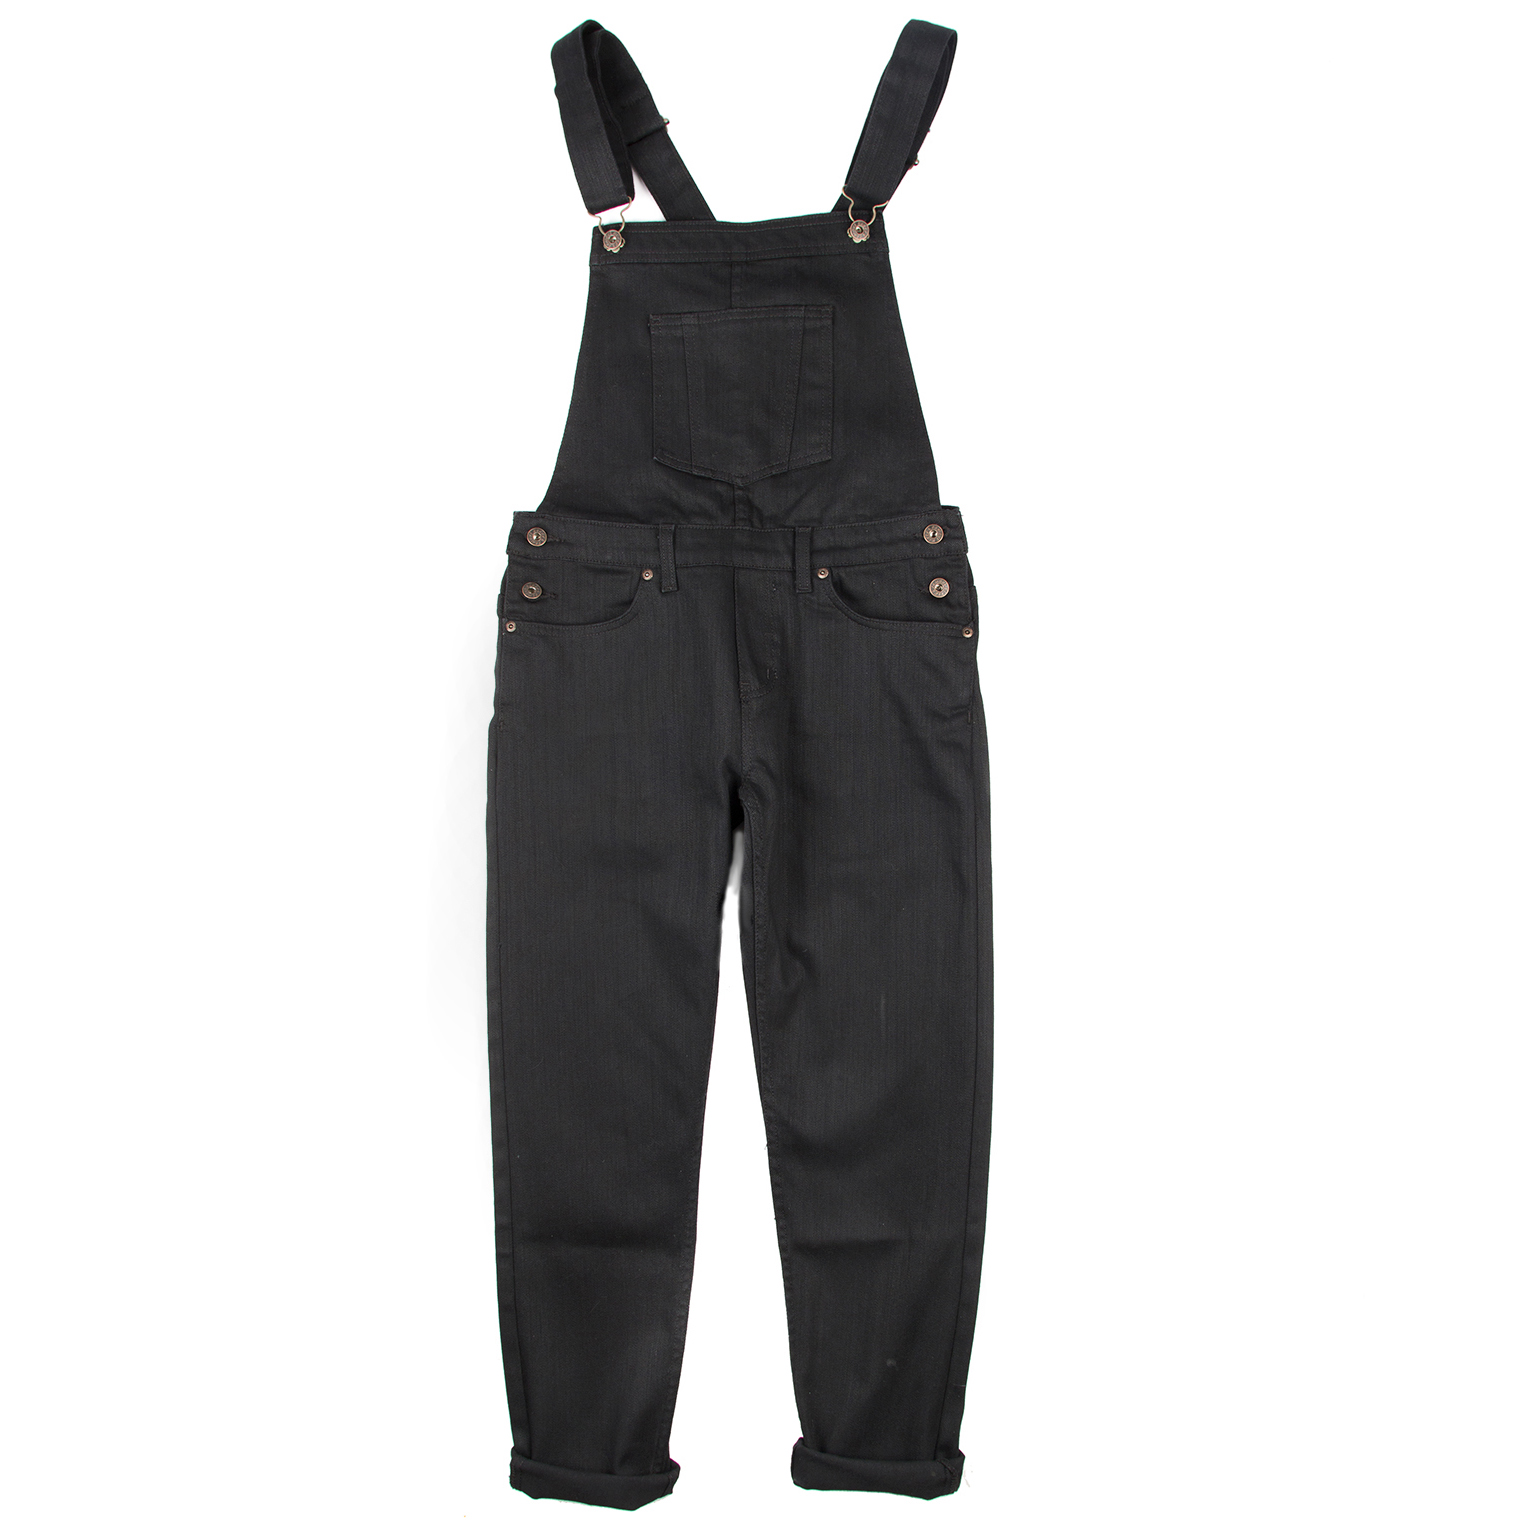 Women's Overalls Black Power-Stretch Flat View